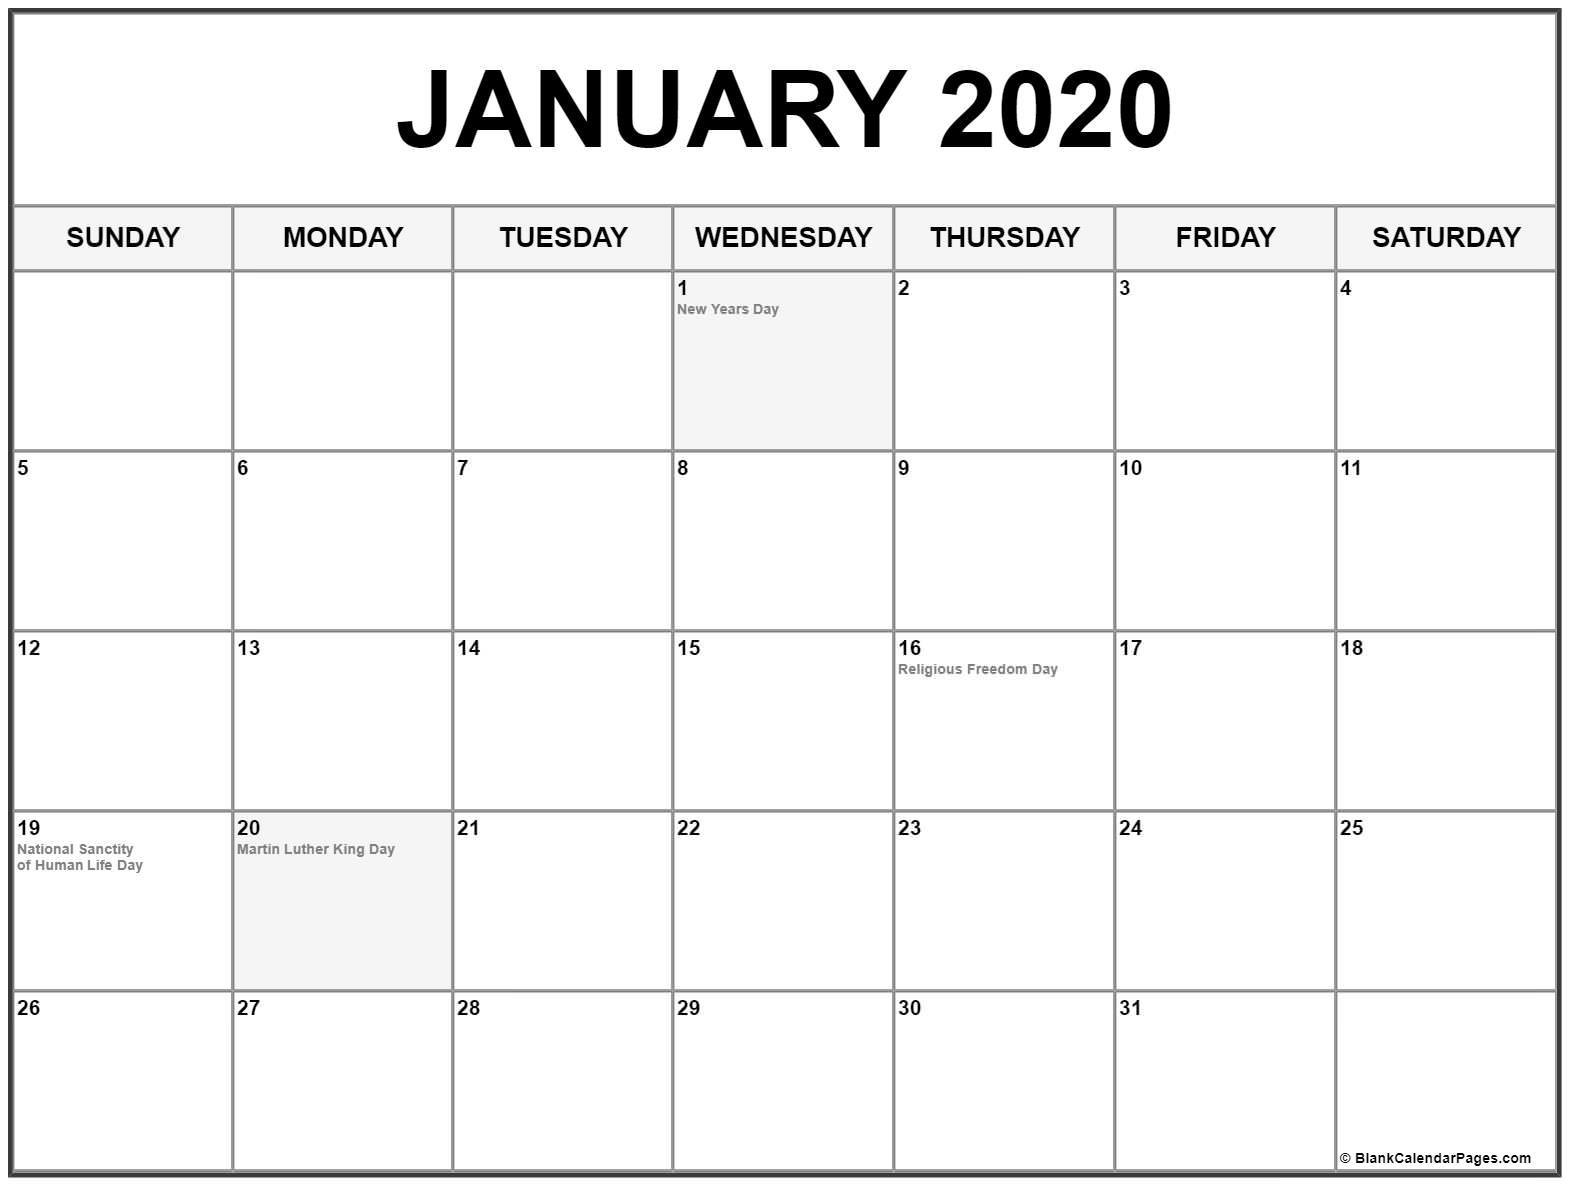 Collection Of January 2020 Calendars With Holidays-January 2020 Calendar With Holidays Usa